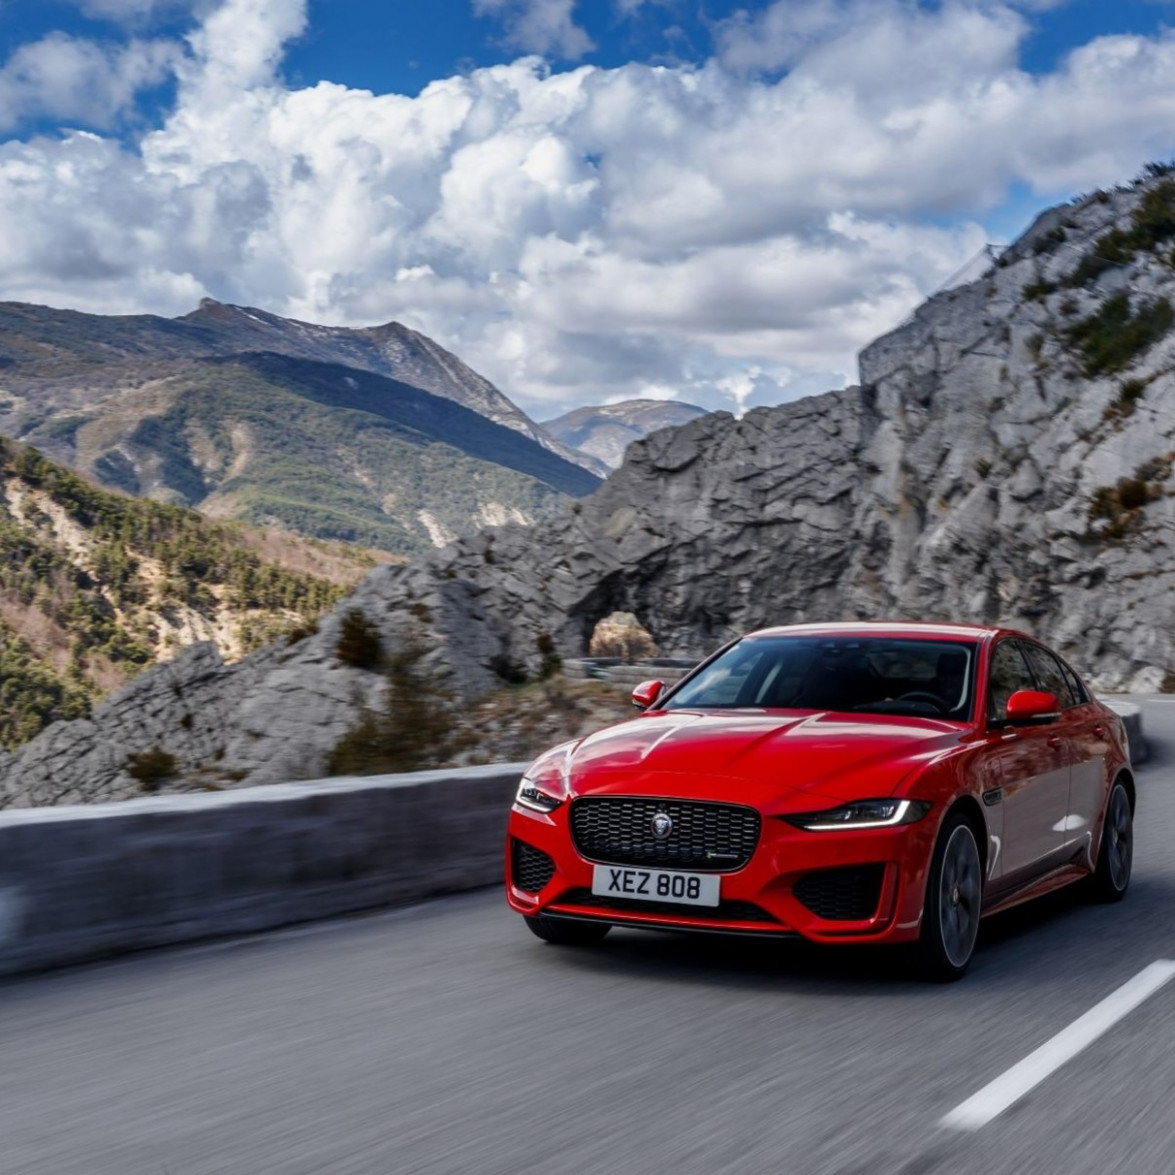 performance and new engine 2022 jaguar xe review | new